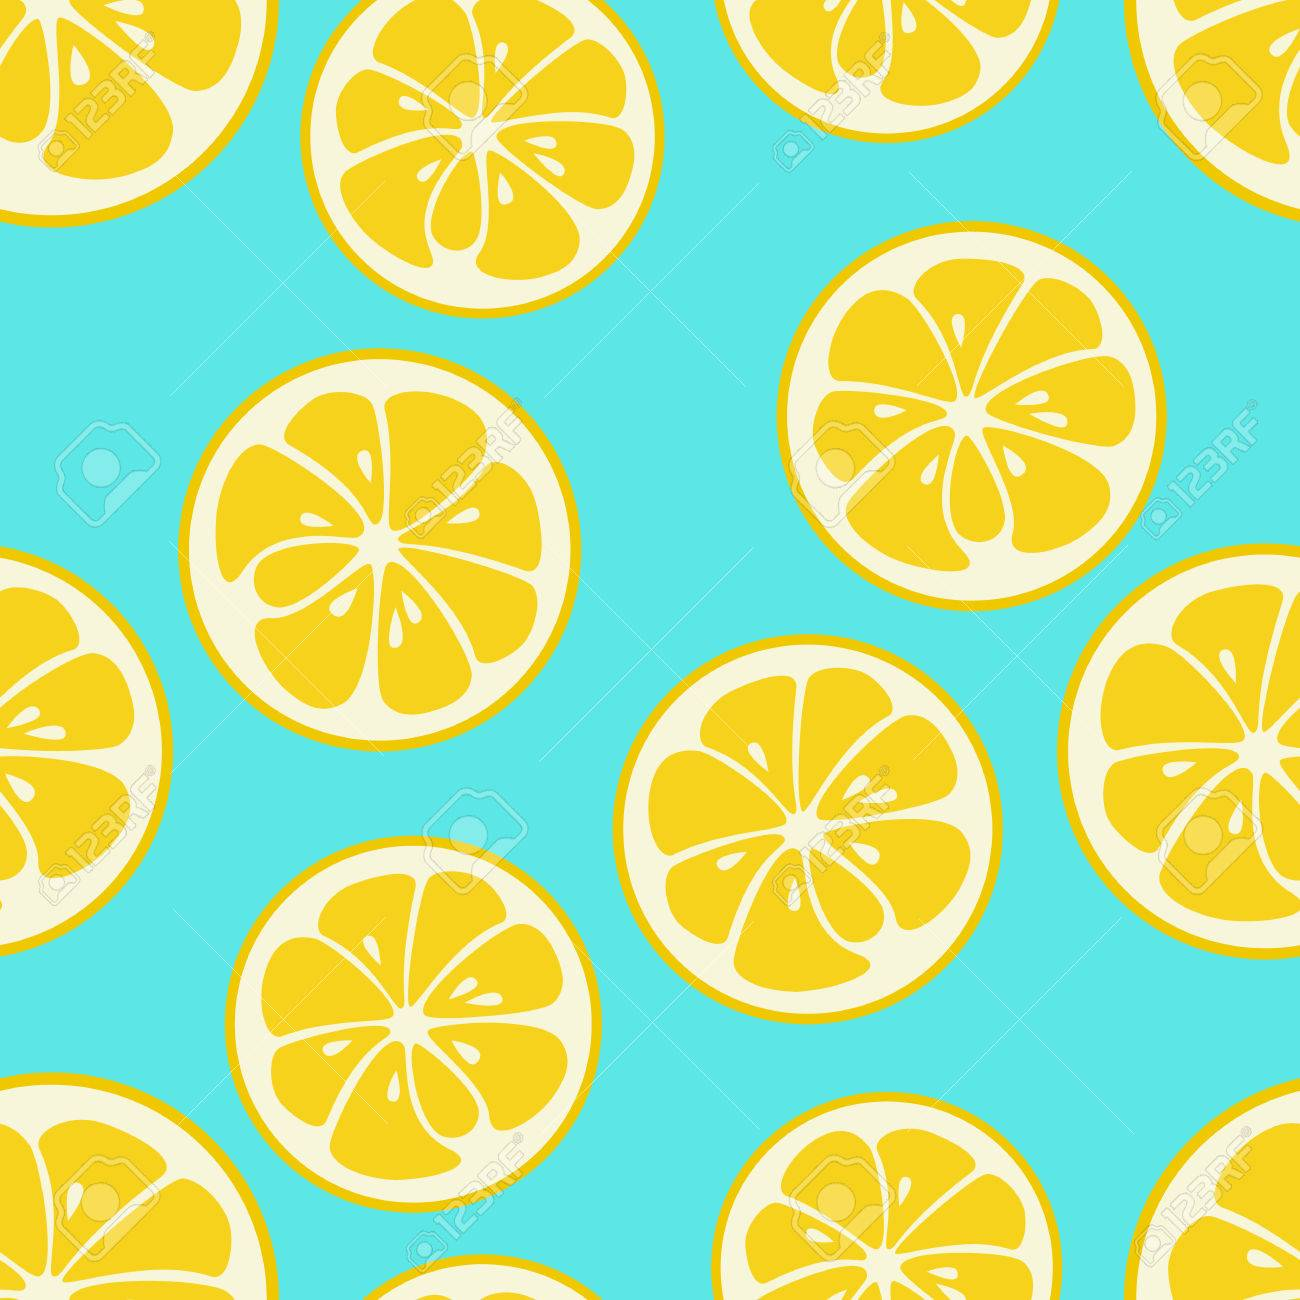 Cute Seamless Pattern With Yellow Lemon Slices Tasty Summer